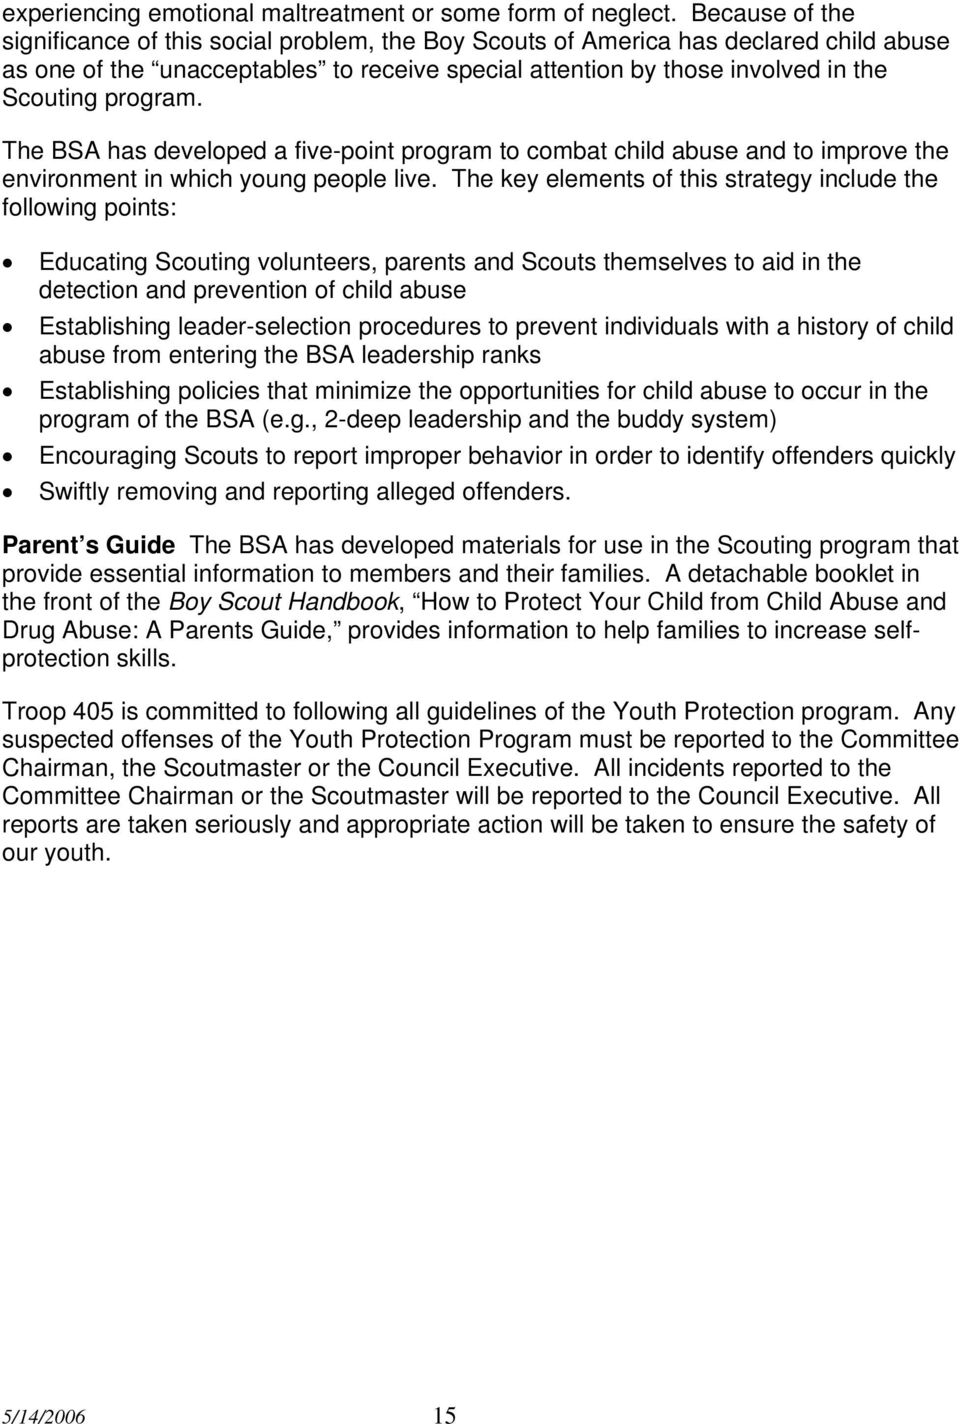 program. The BSA has developed a five-point program to combat child abuse and to improve the environment in which young people live.